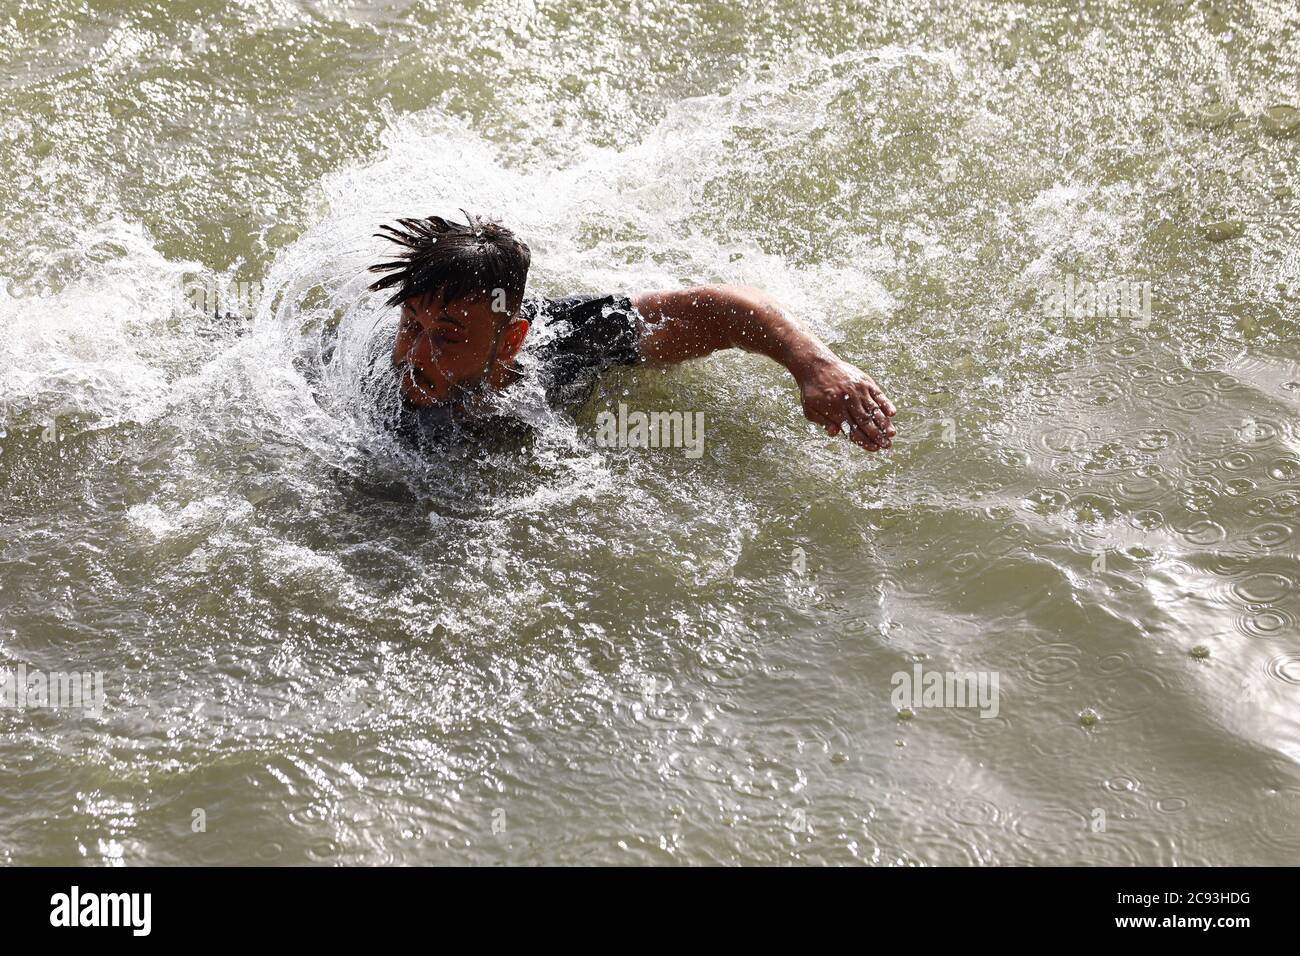 Page 3 Baghdad Tigris Iraq High Resolution Stock Photography And Images Alamy